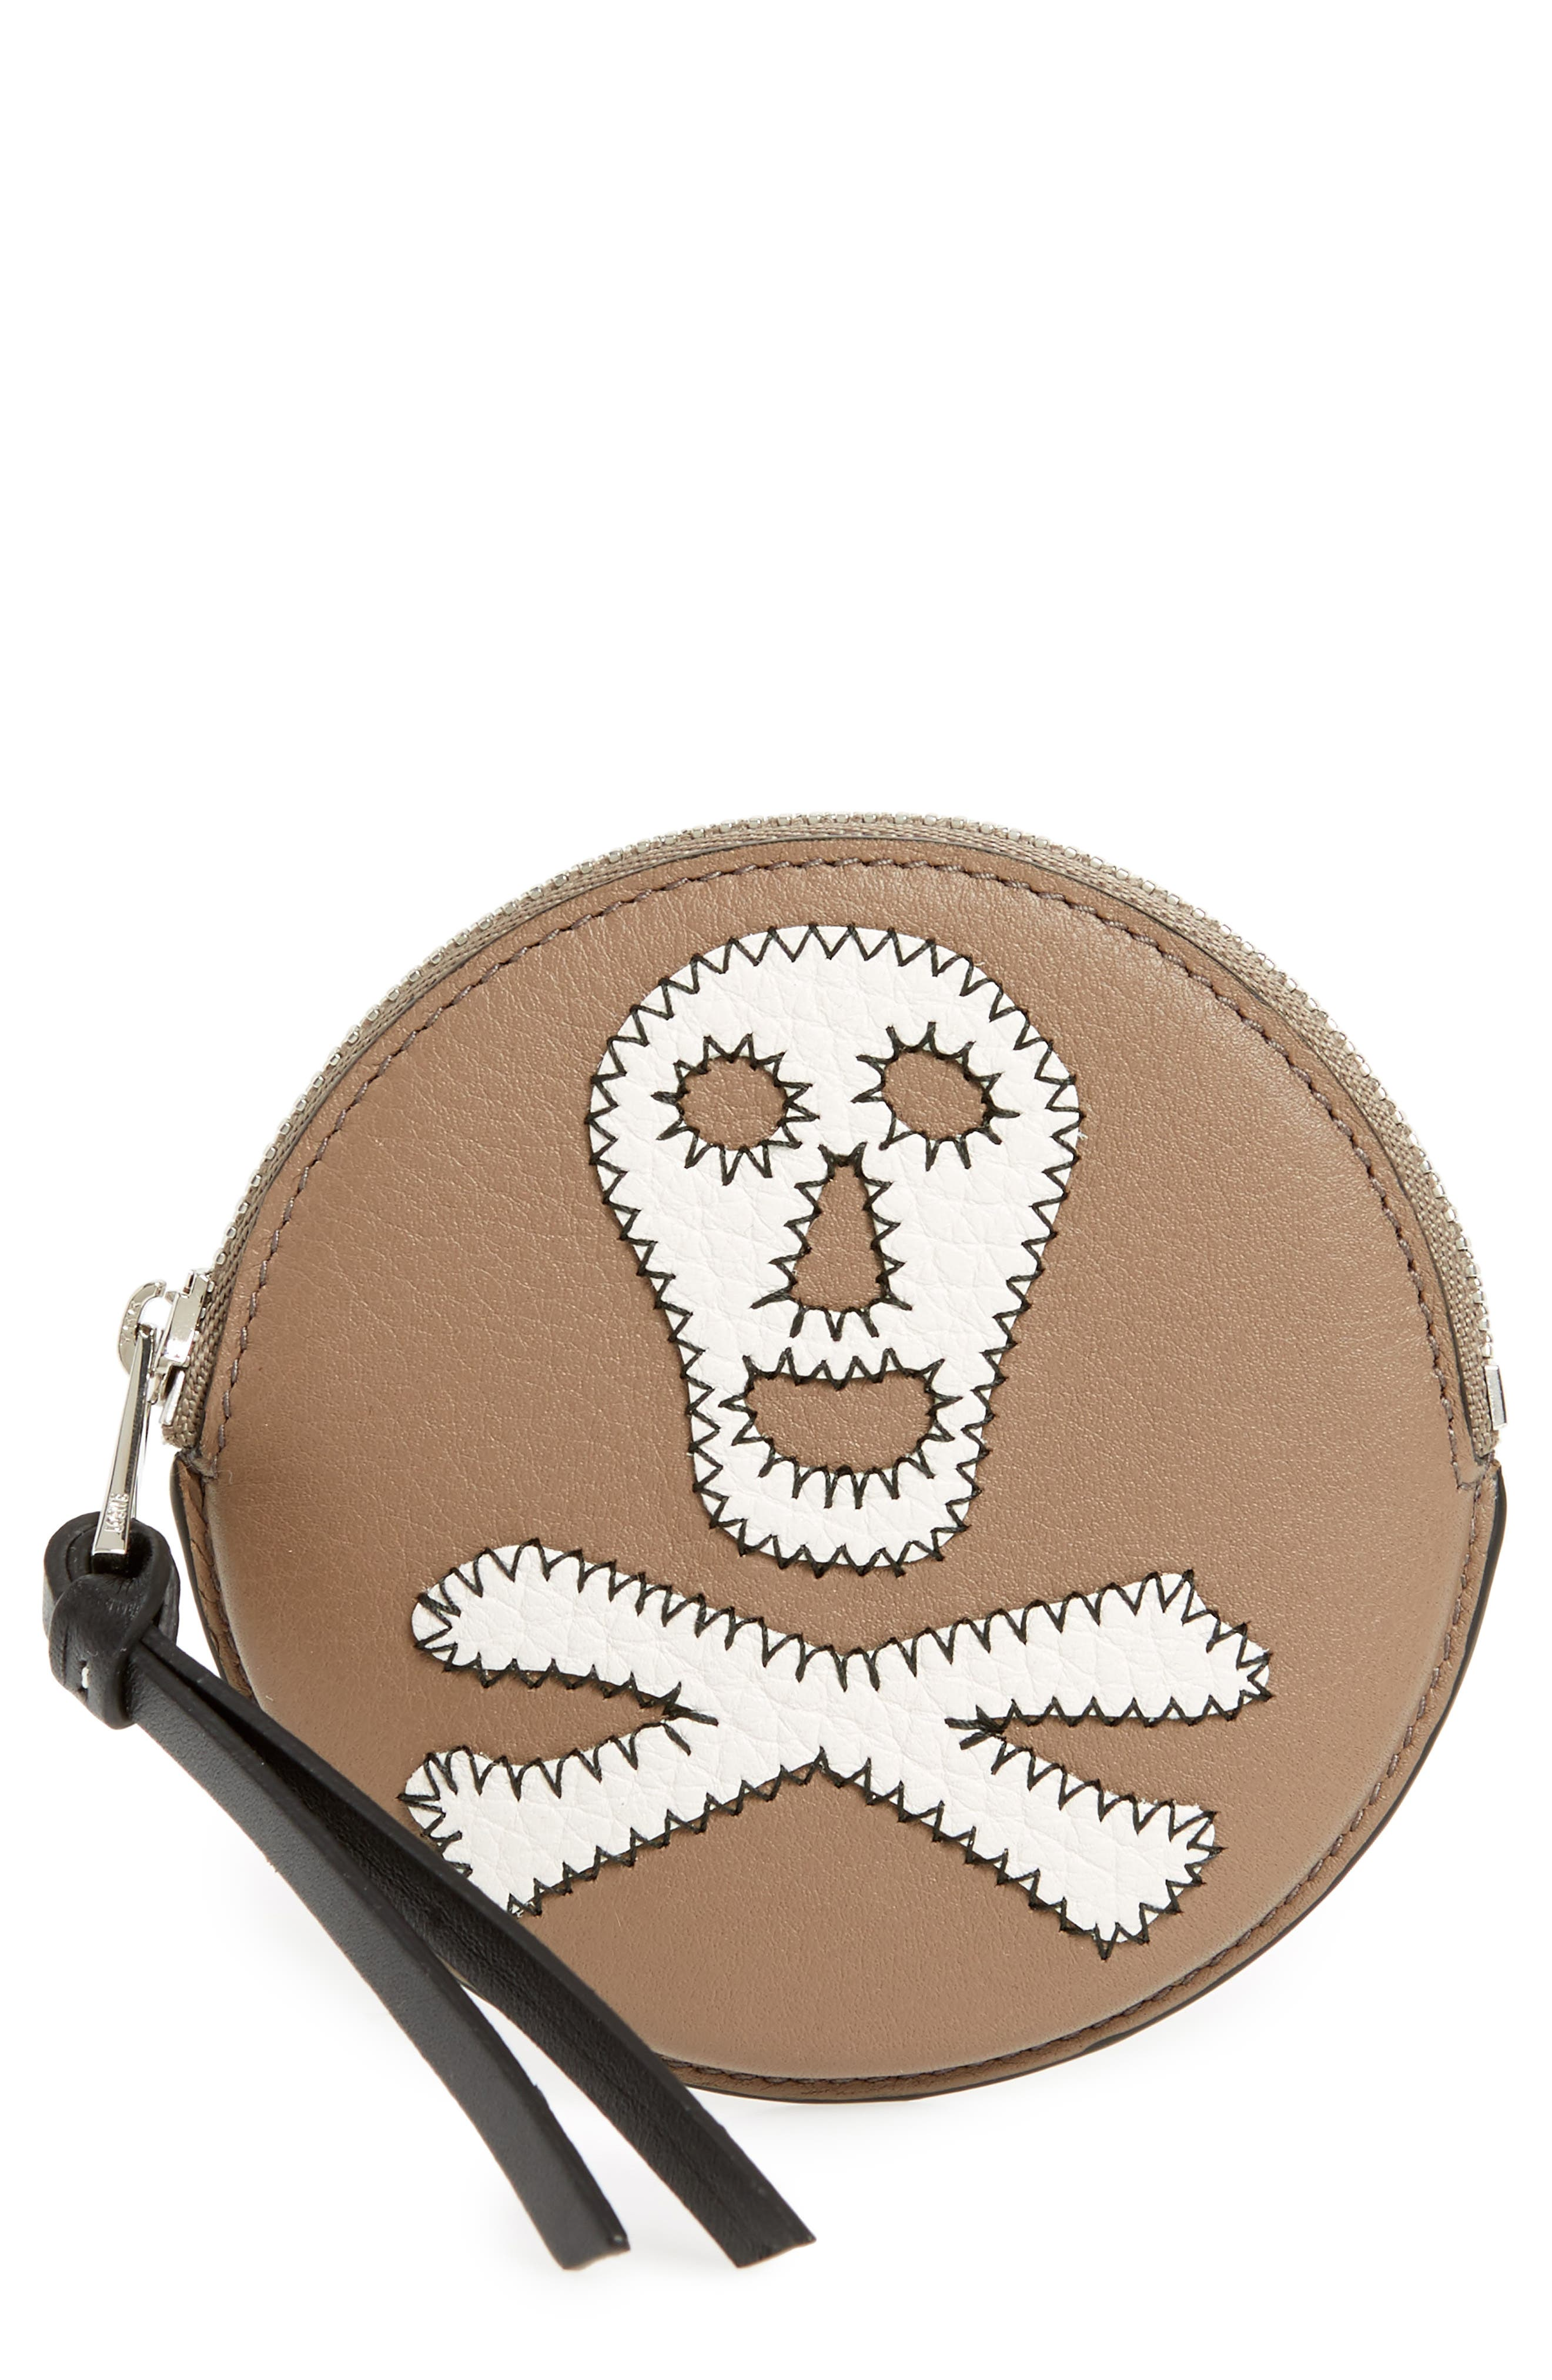 Skull Round Leather Zip Pouch,                             Main thumbnail 1, color,                             922